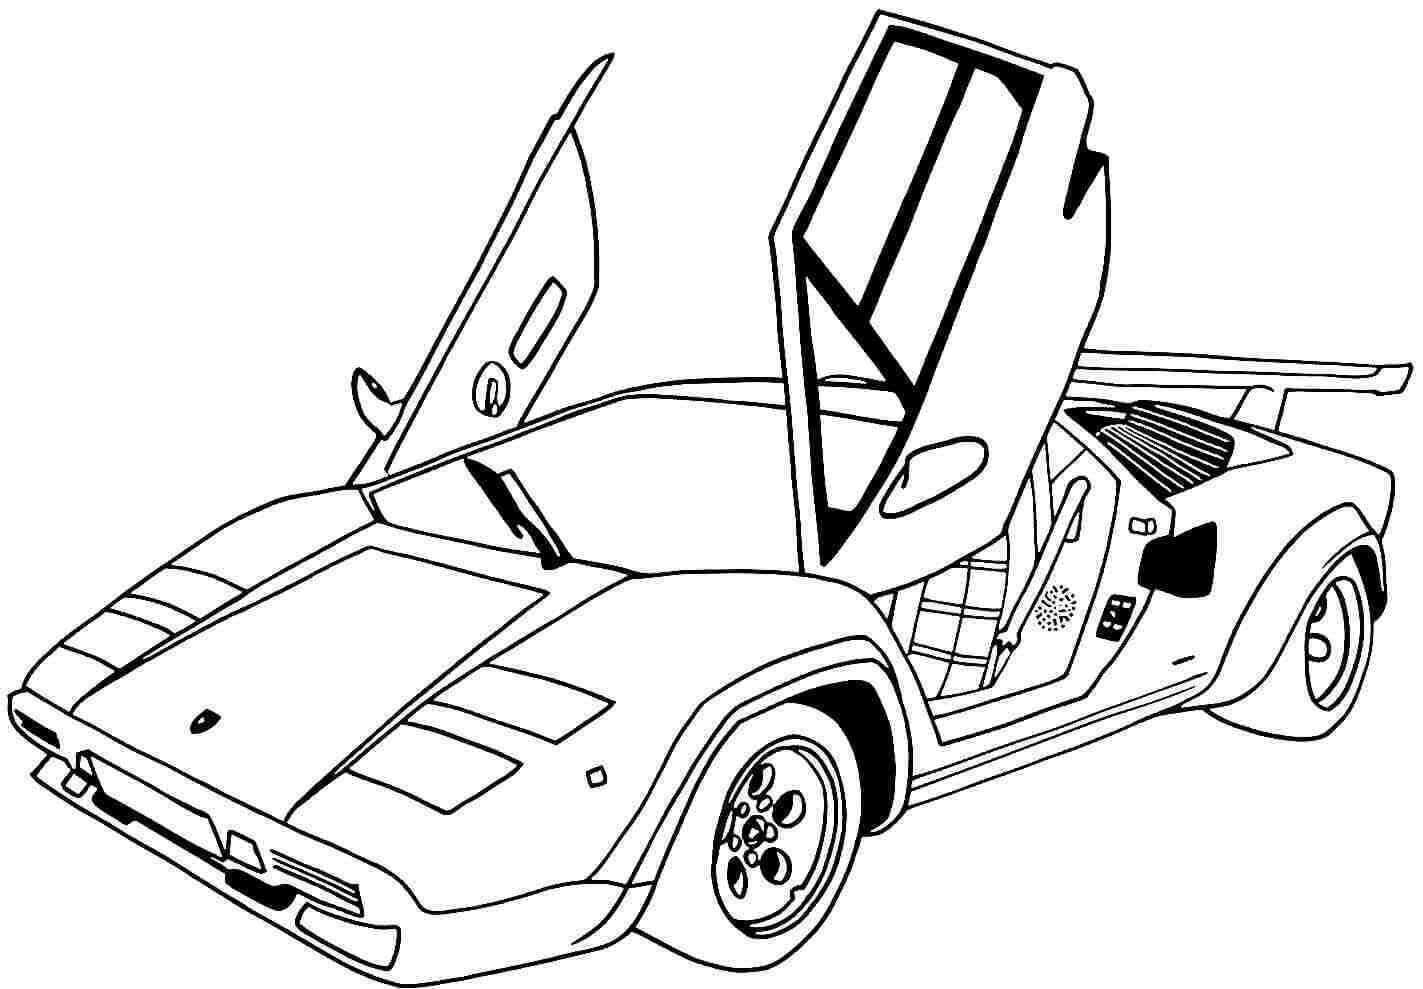 coloring cars printables car coloring pages best coloring pages for kids cars printables coloring 1 1